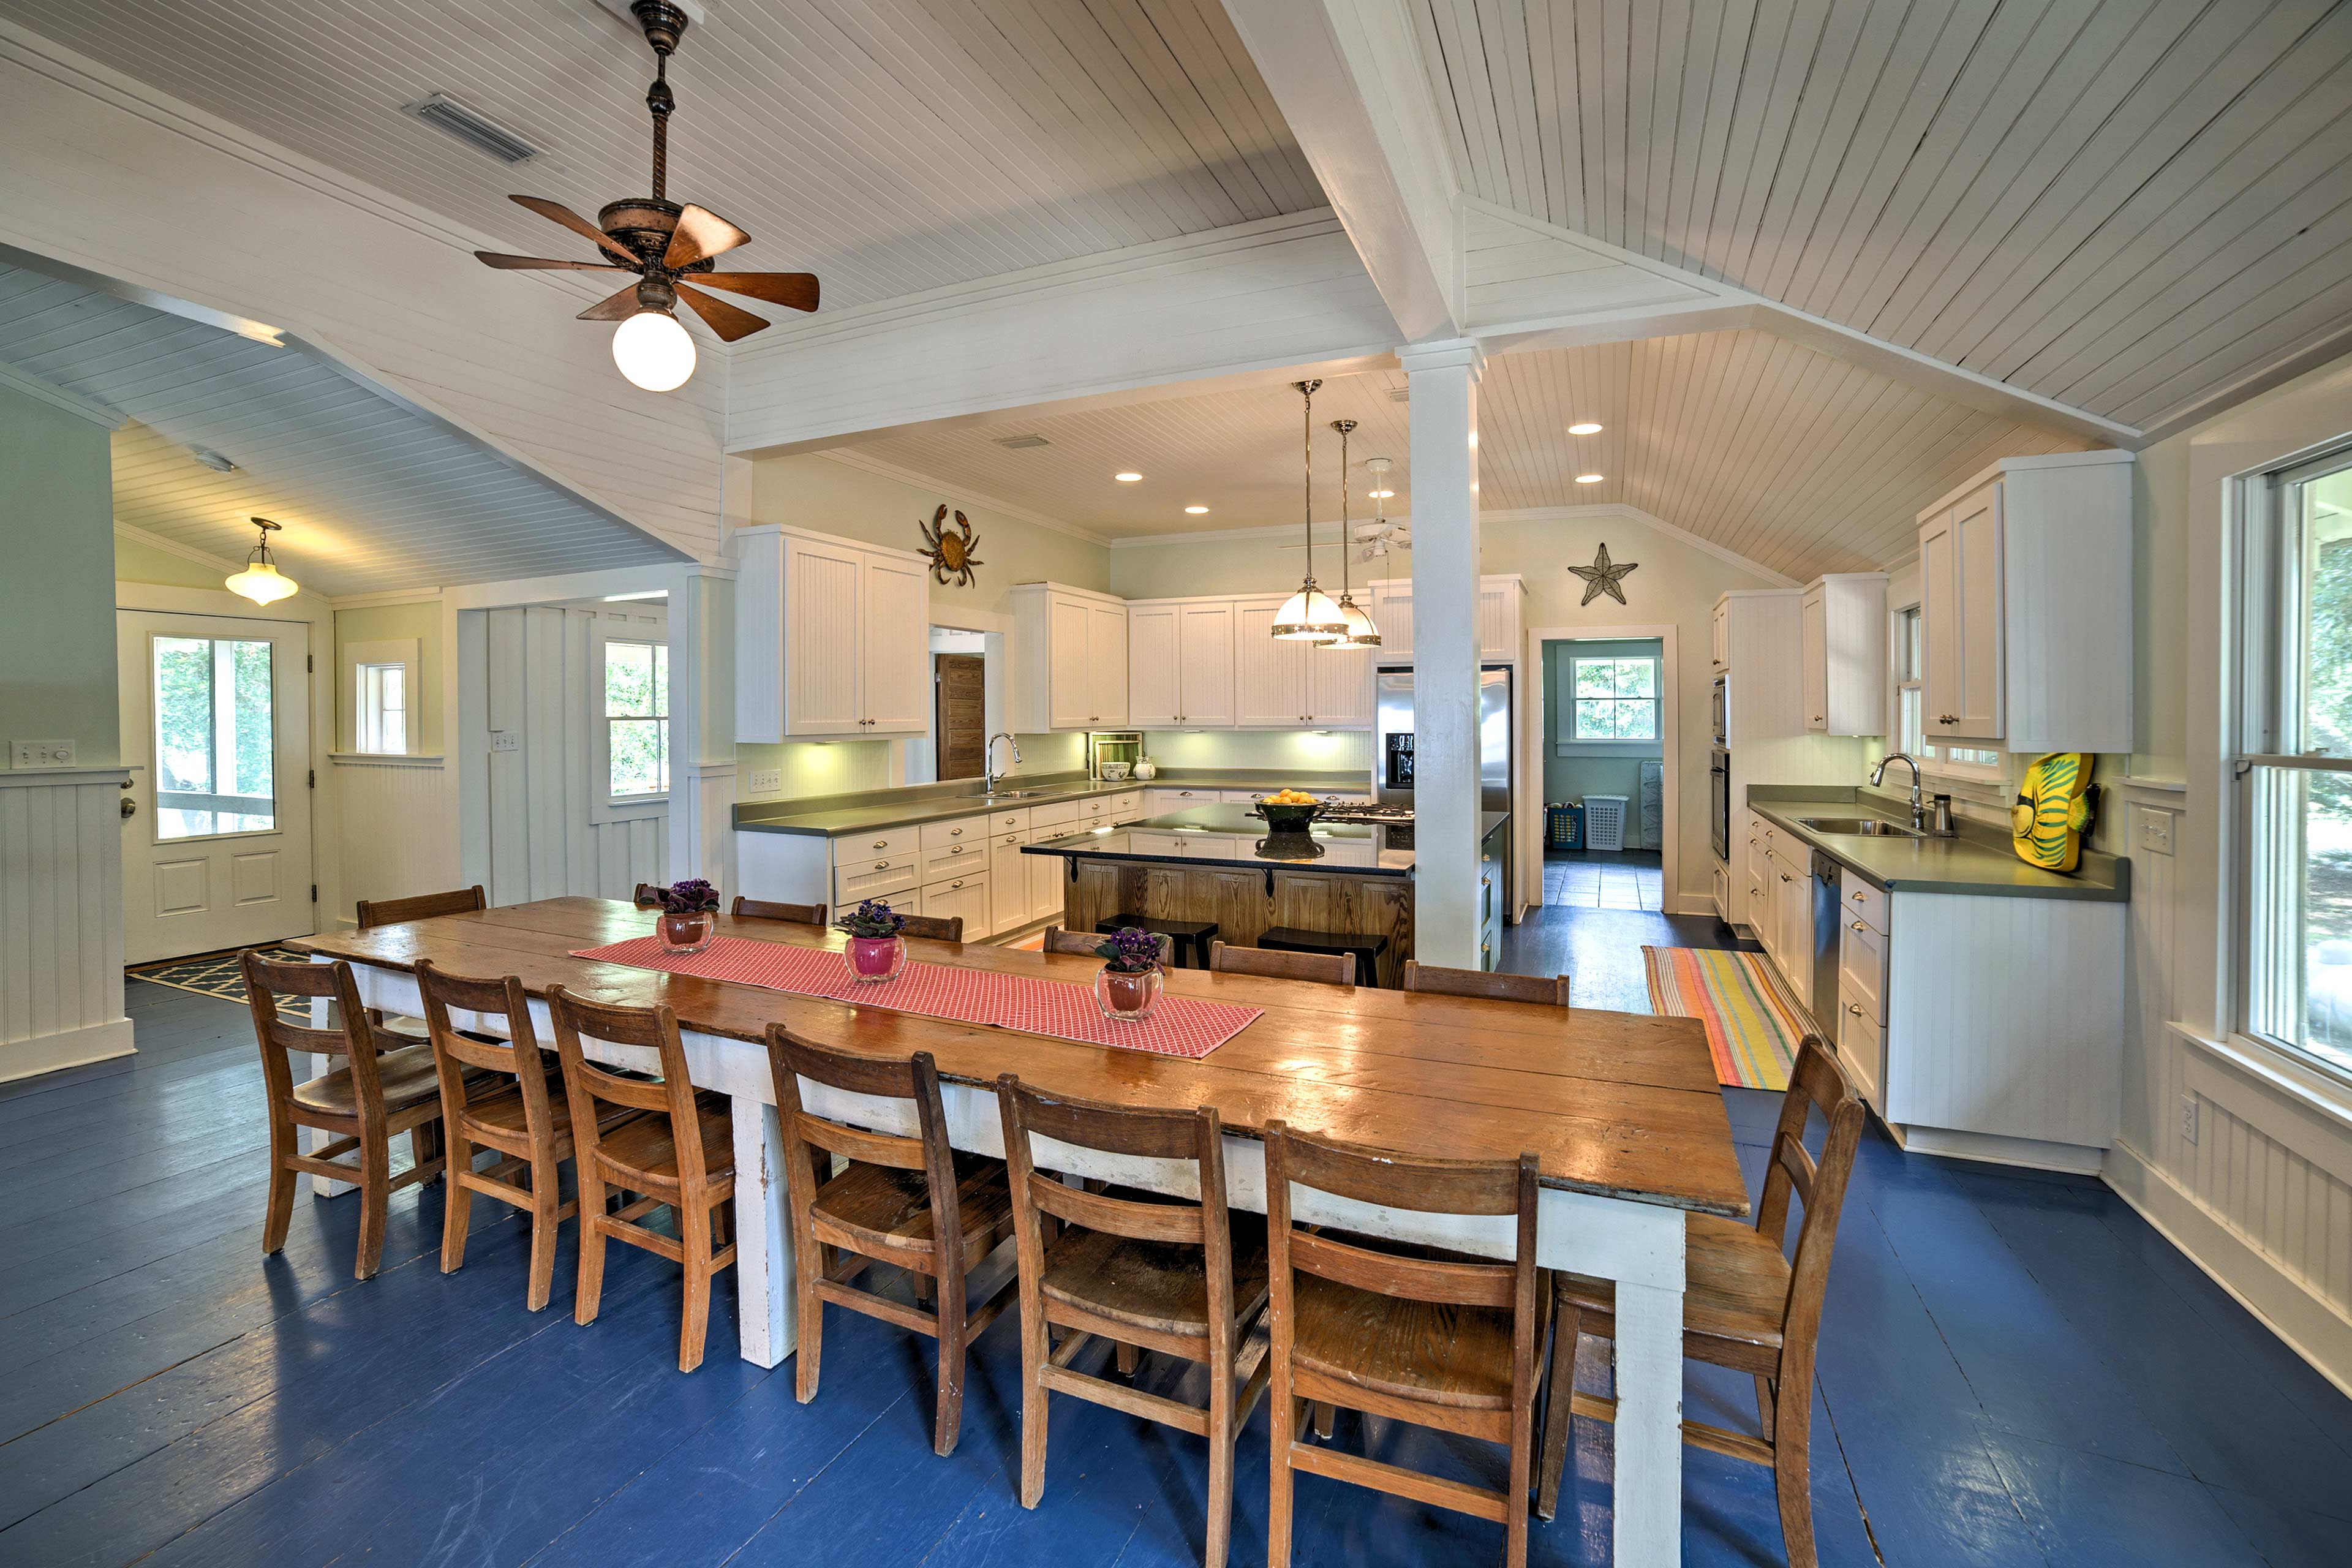 Share home-cooked feasts at the extended dining table!